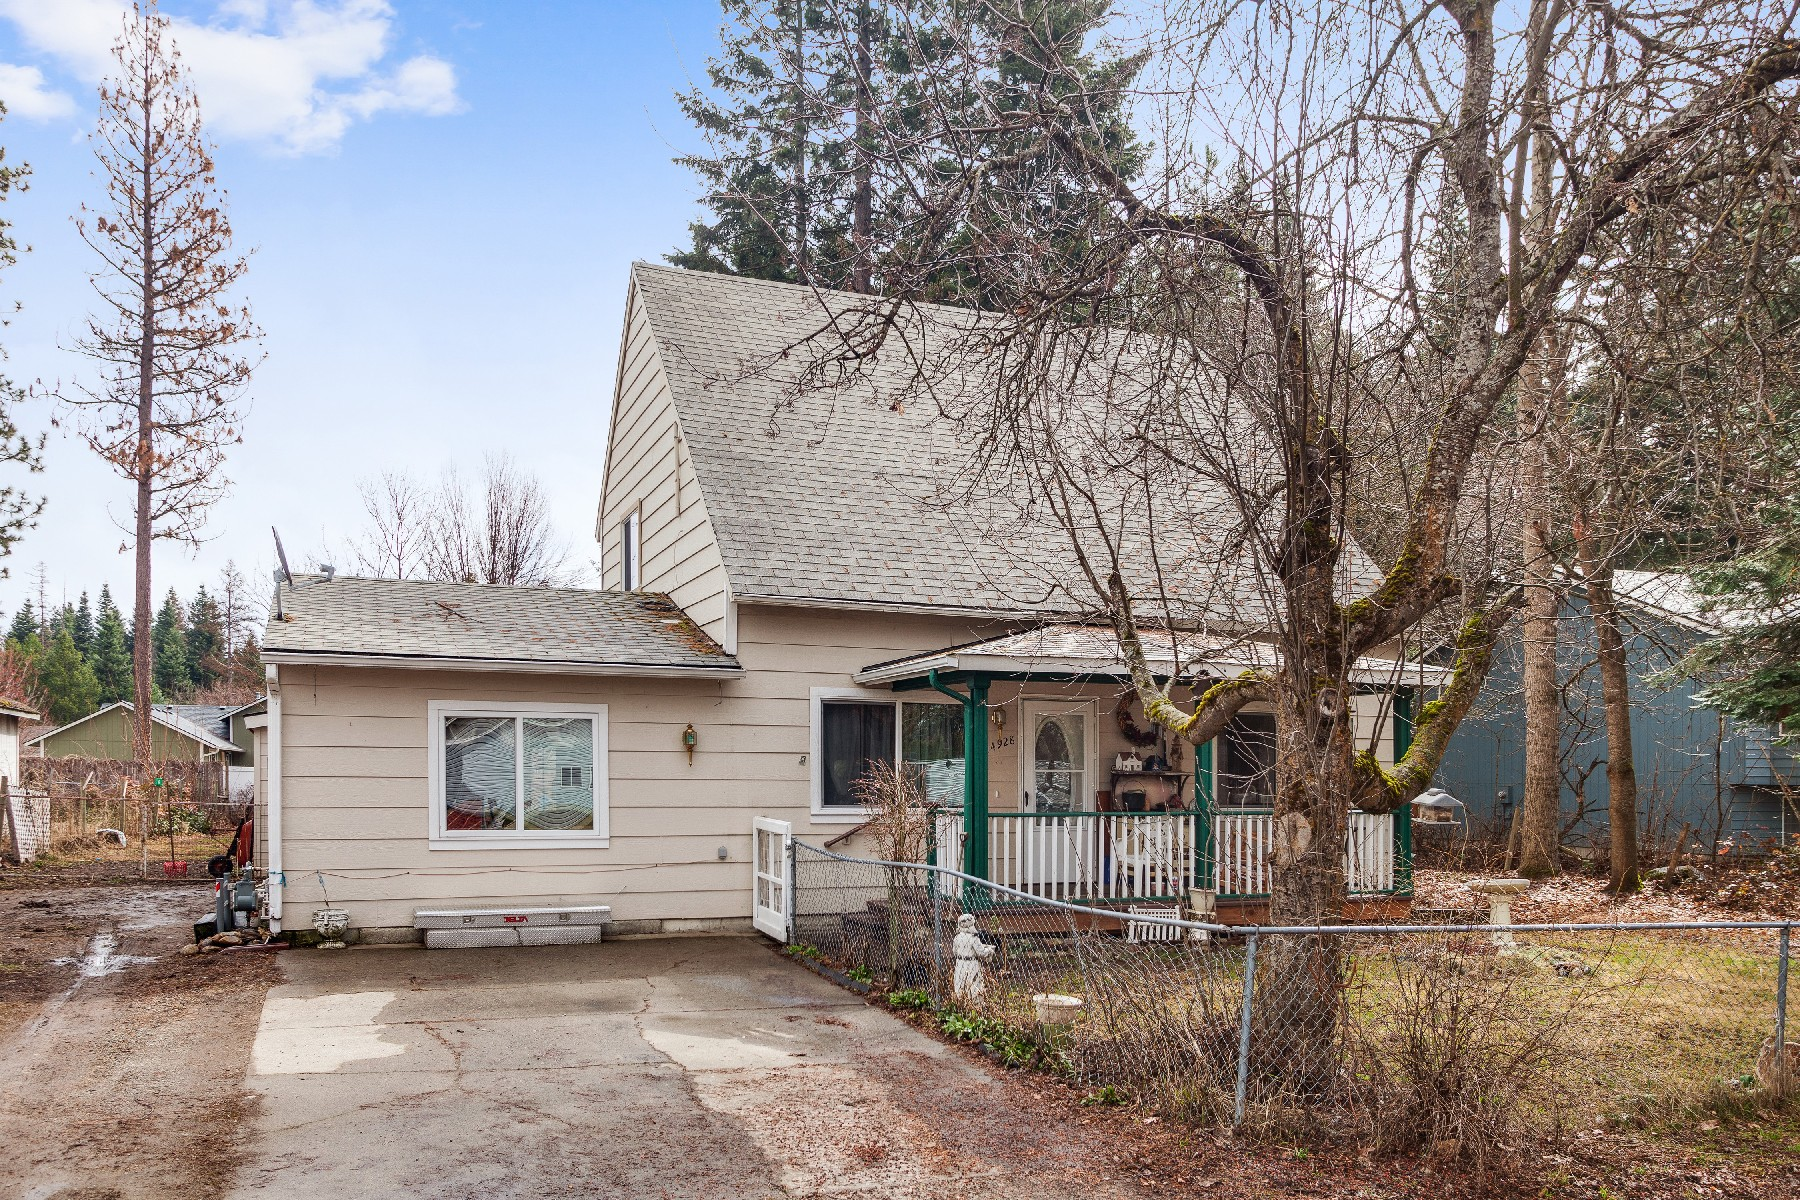 Single Family Home for Active at Spacious 4 bedroom/2 bathroom home 14928 N Stevens Rathdrum, Idaho 83858 United States